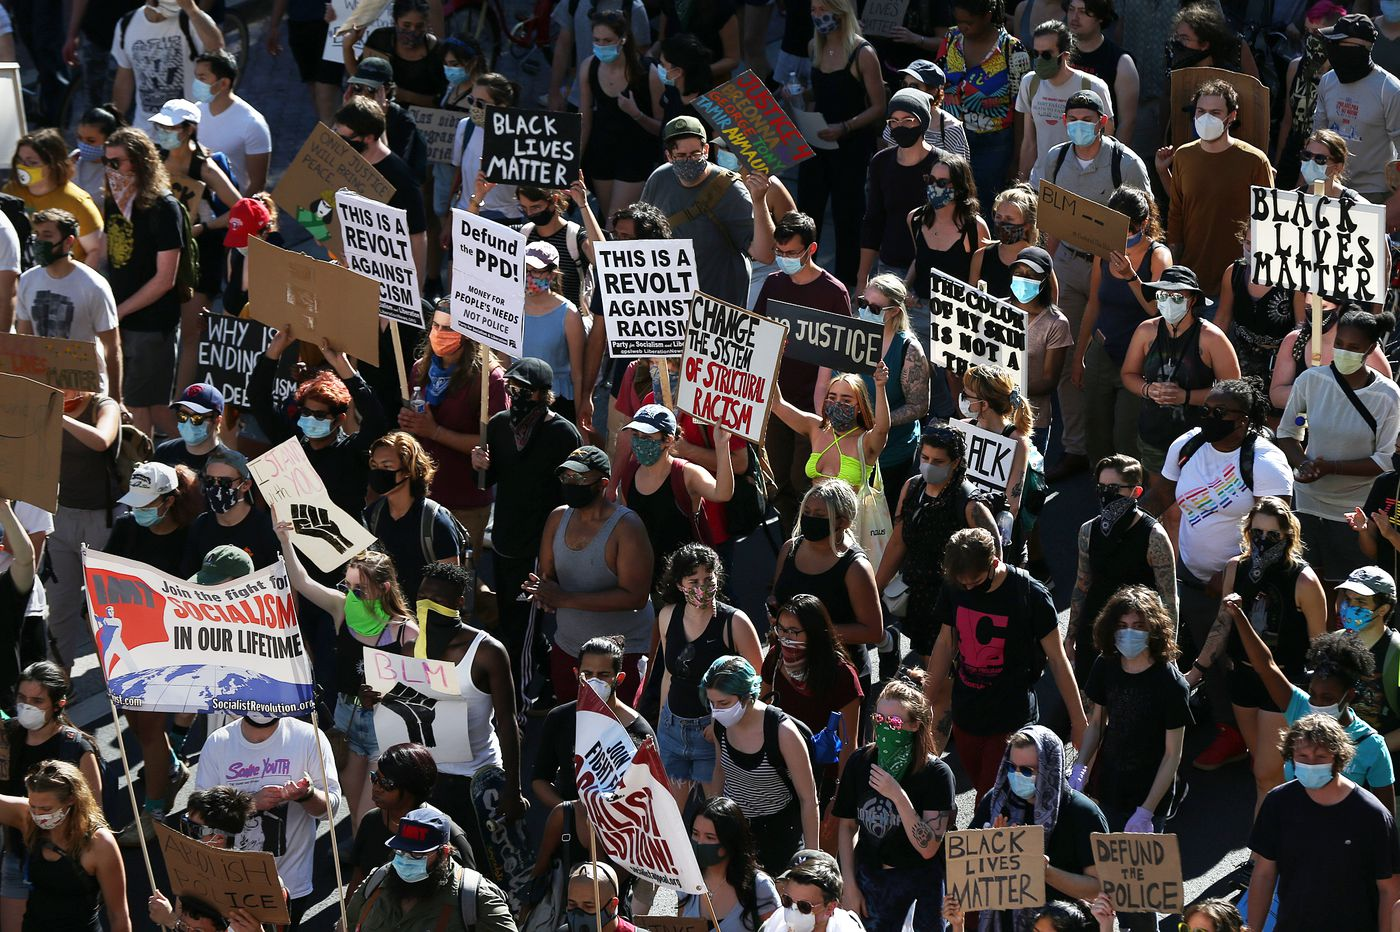 Protests in Philly haven't meant a spike in COVID-19 cases so far, health officials report